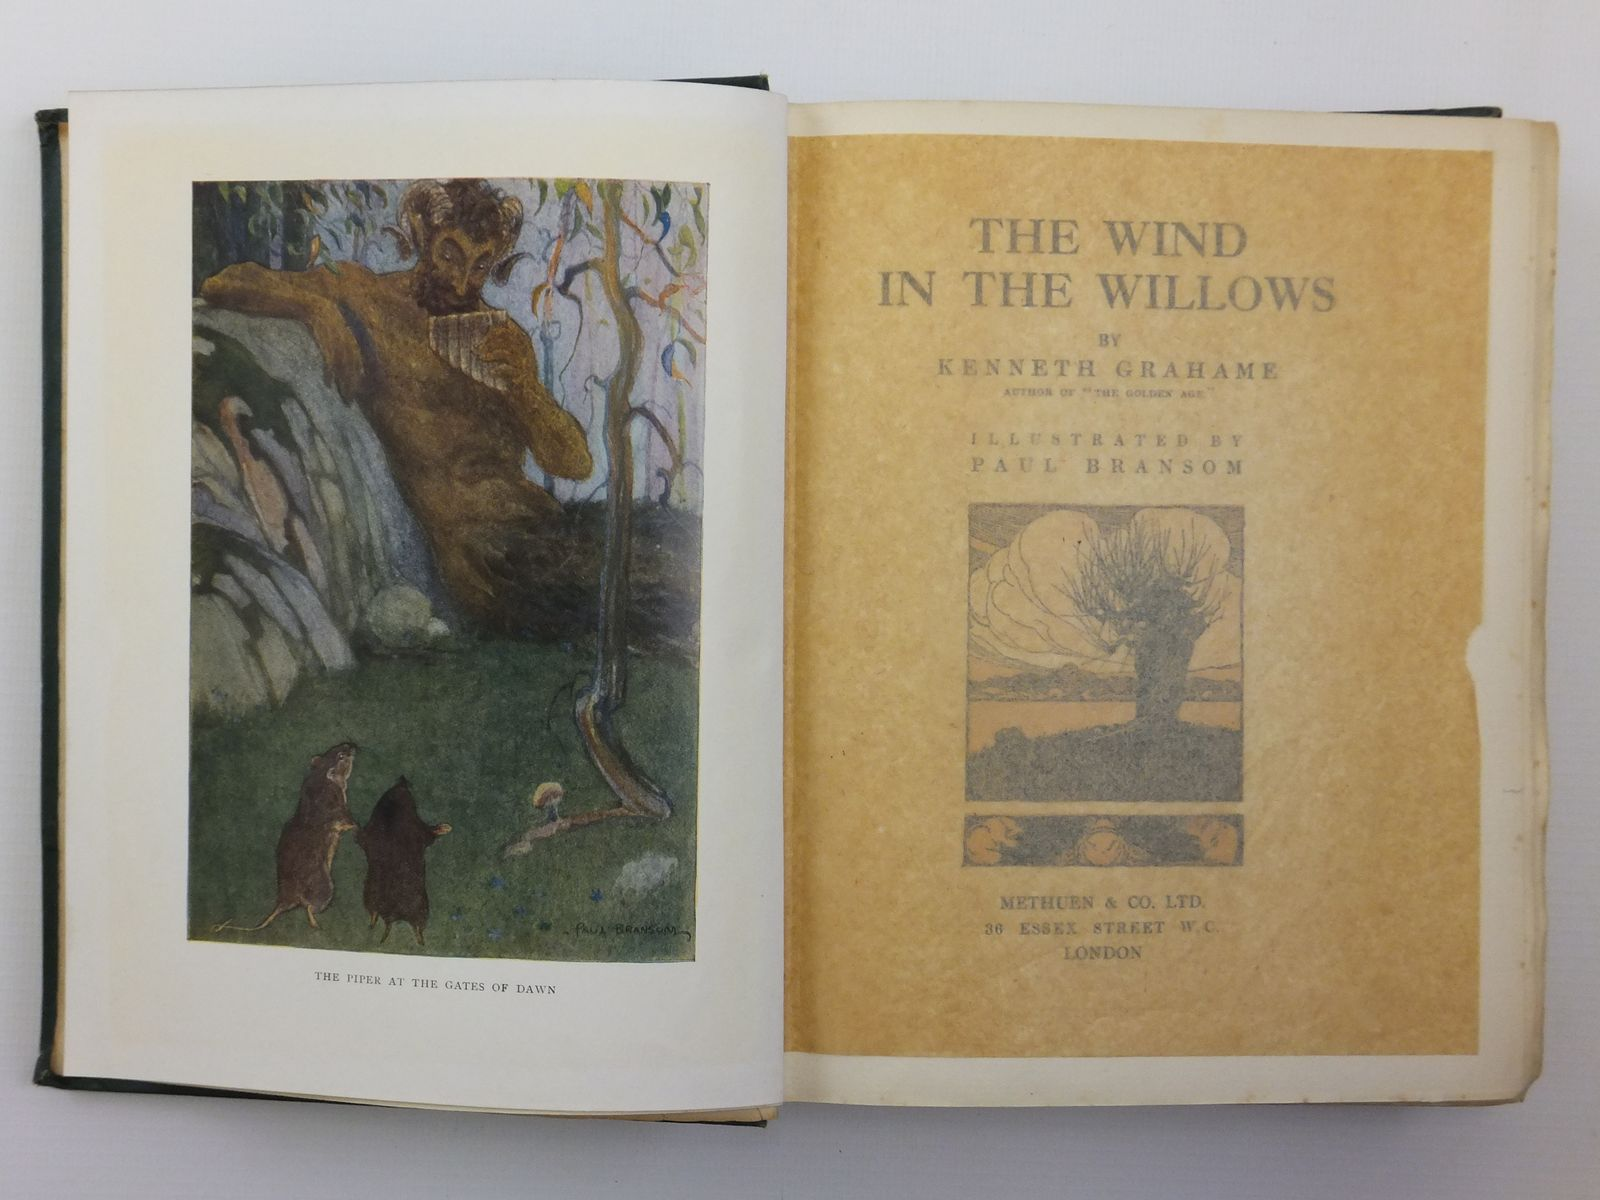 Photo of THE WIND IN THE WILLOWS written by Grahame, Kenneth illustrated by Bransom, Paul published by Methuen & Co. Ltd. (STOCK CODE: 2120888)  for sale by Stella & Rose's Books